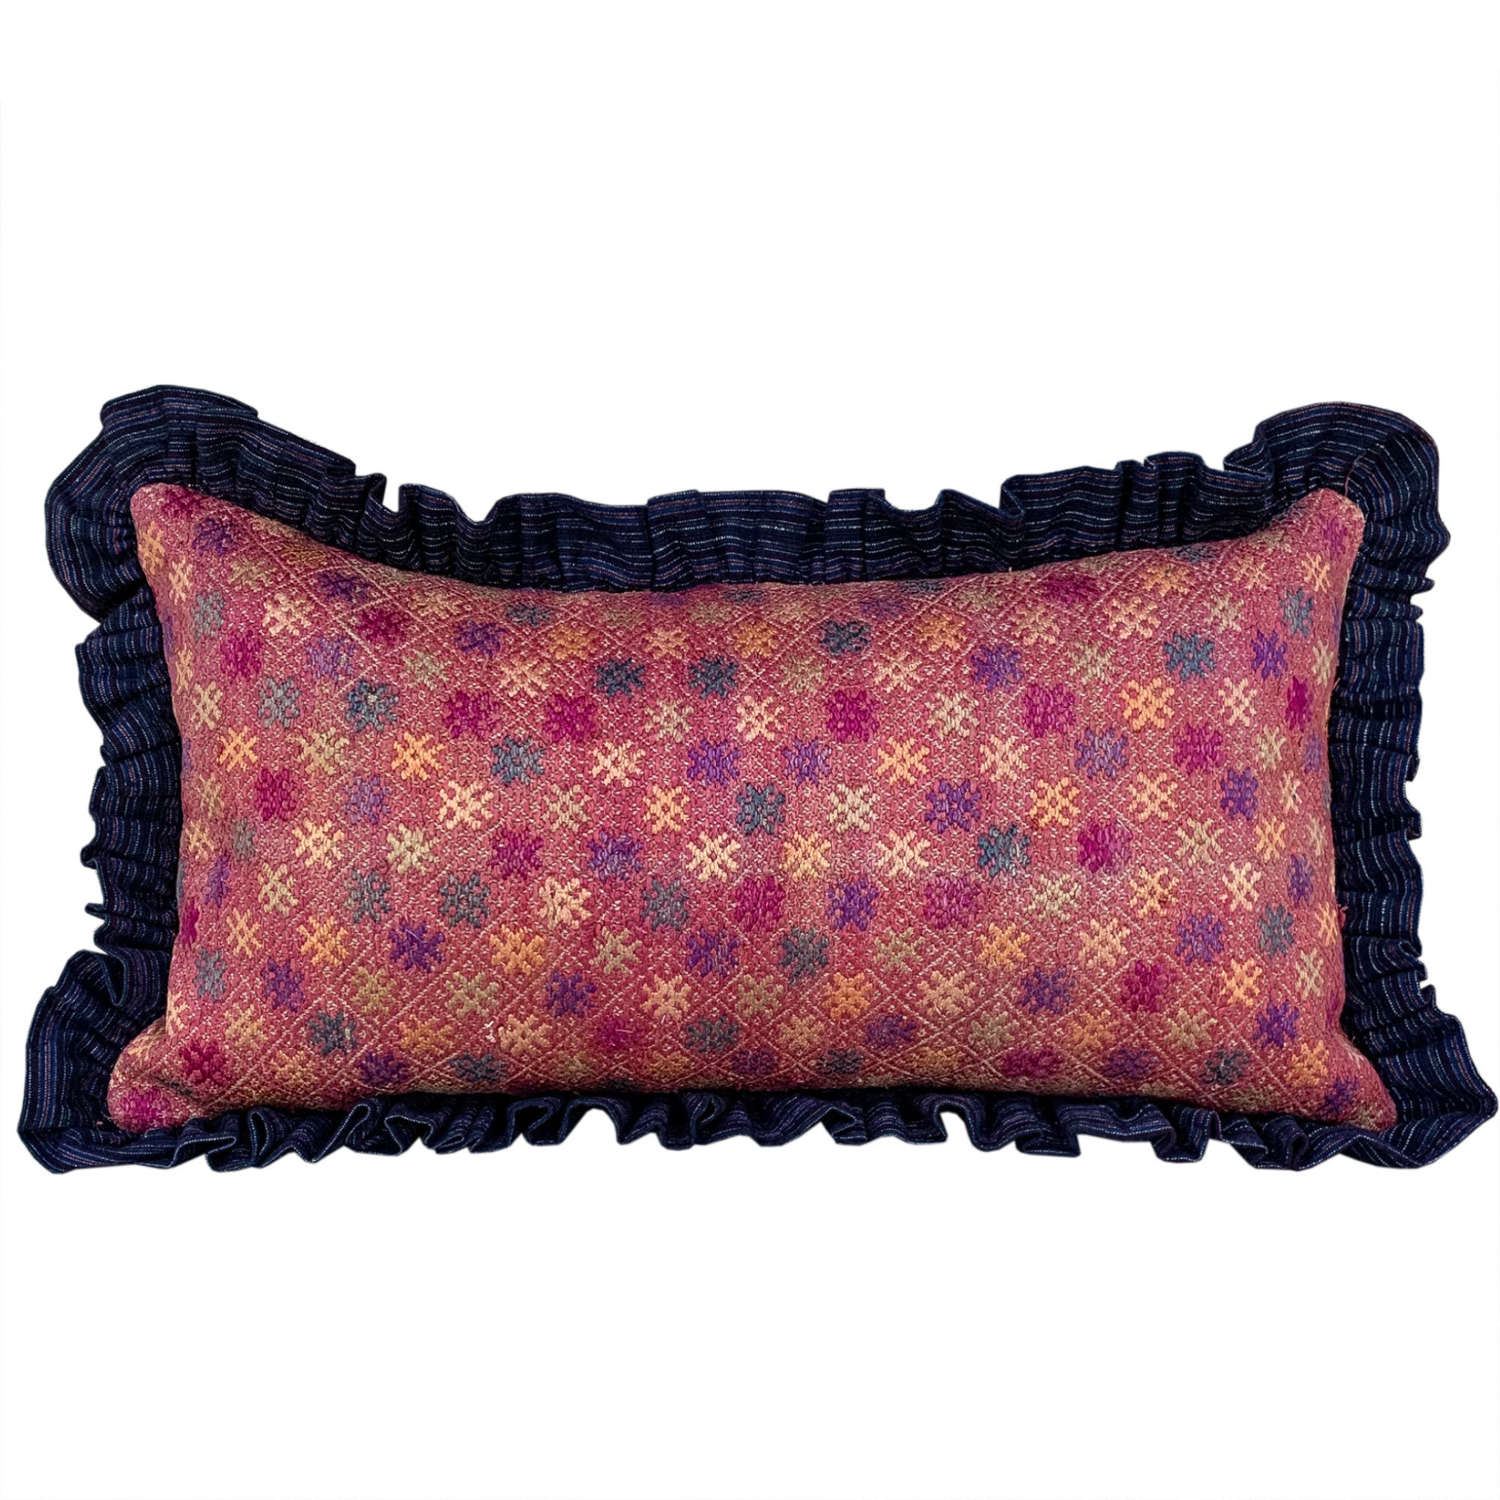 Yao cushions with frill trim